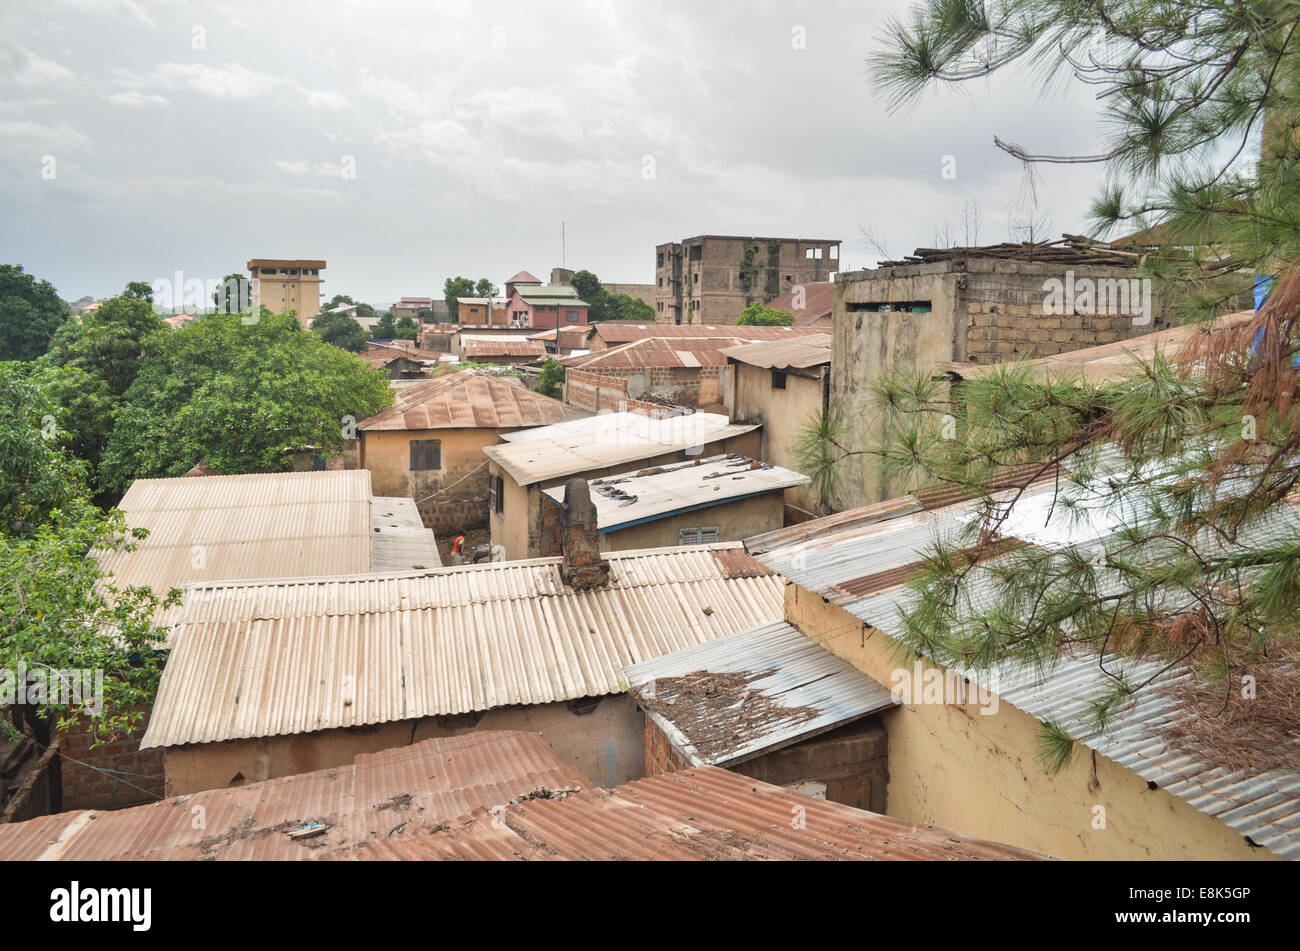 Rusty old roofs of the city center of Labe, Guinea - Stock Image